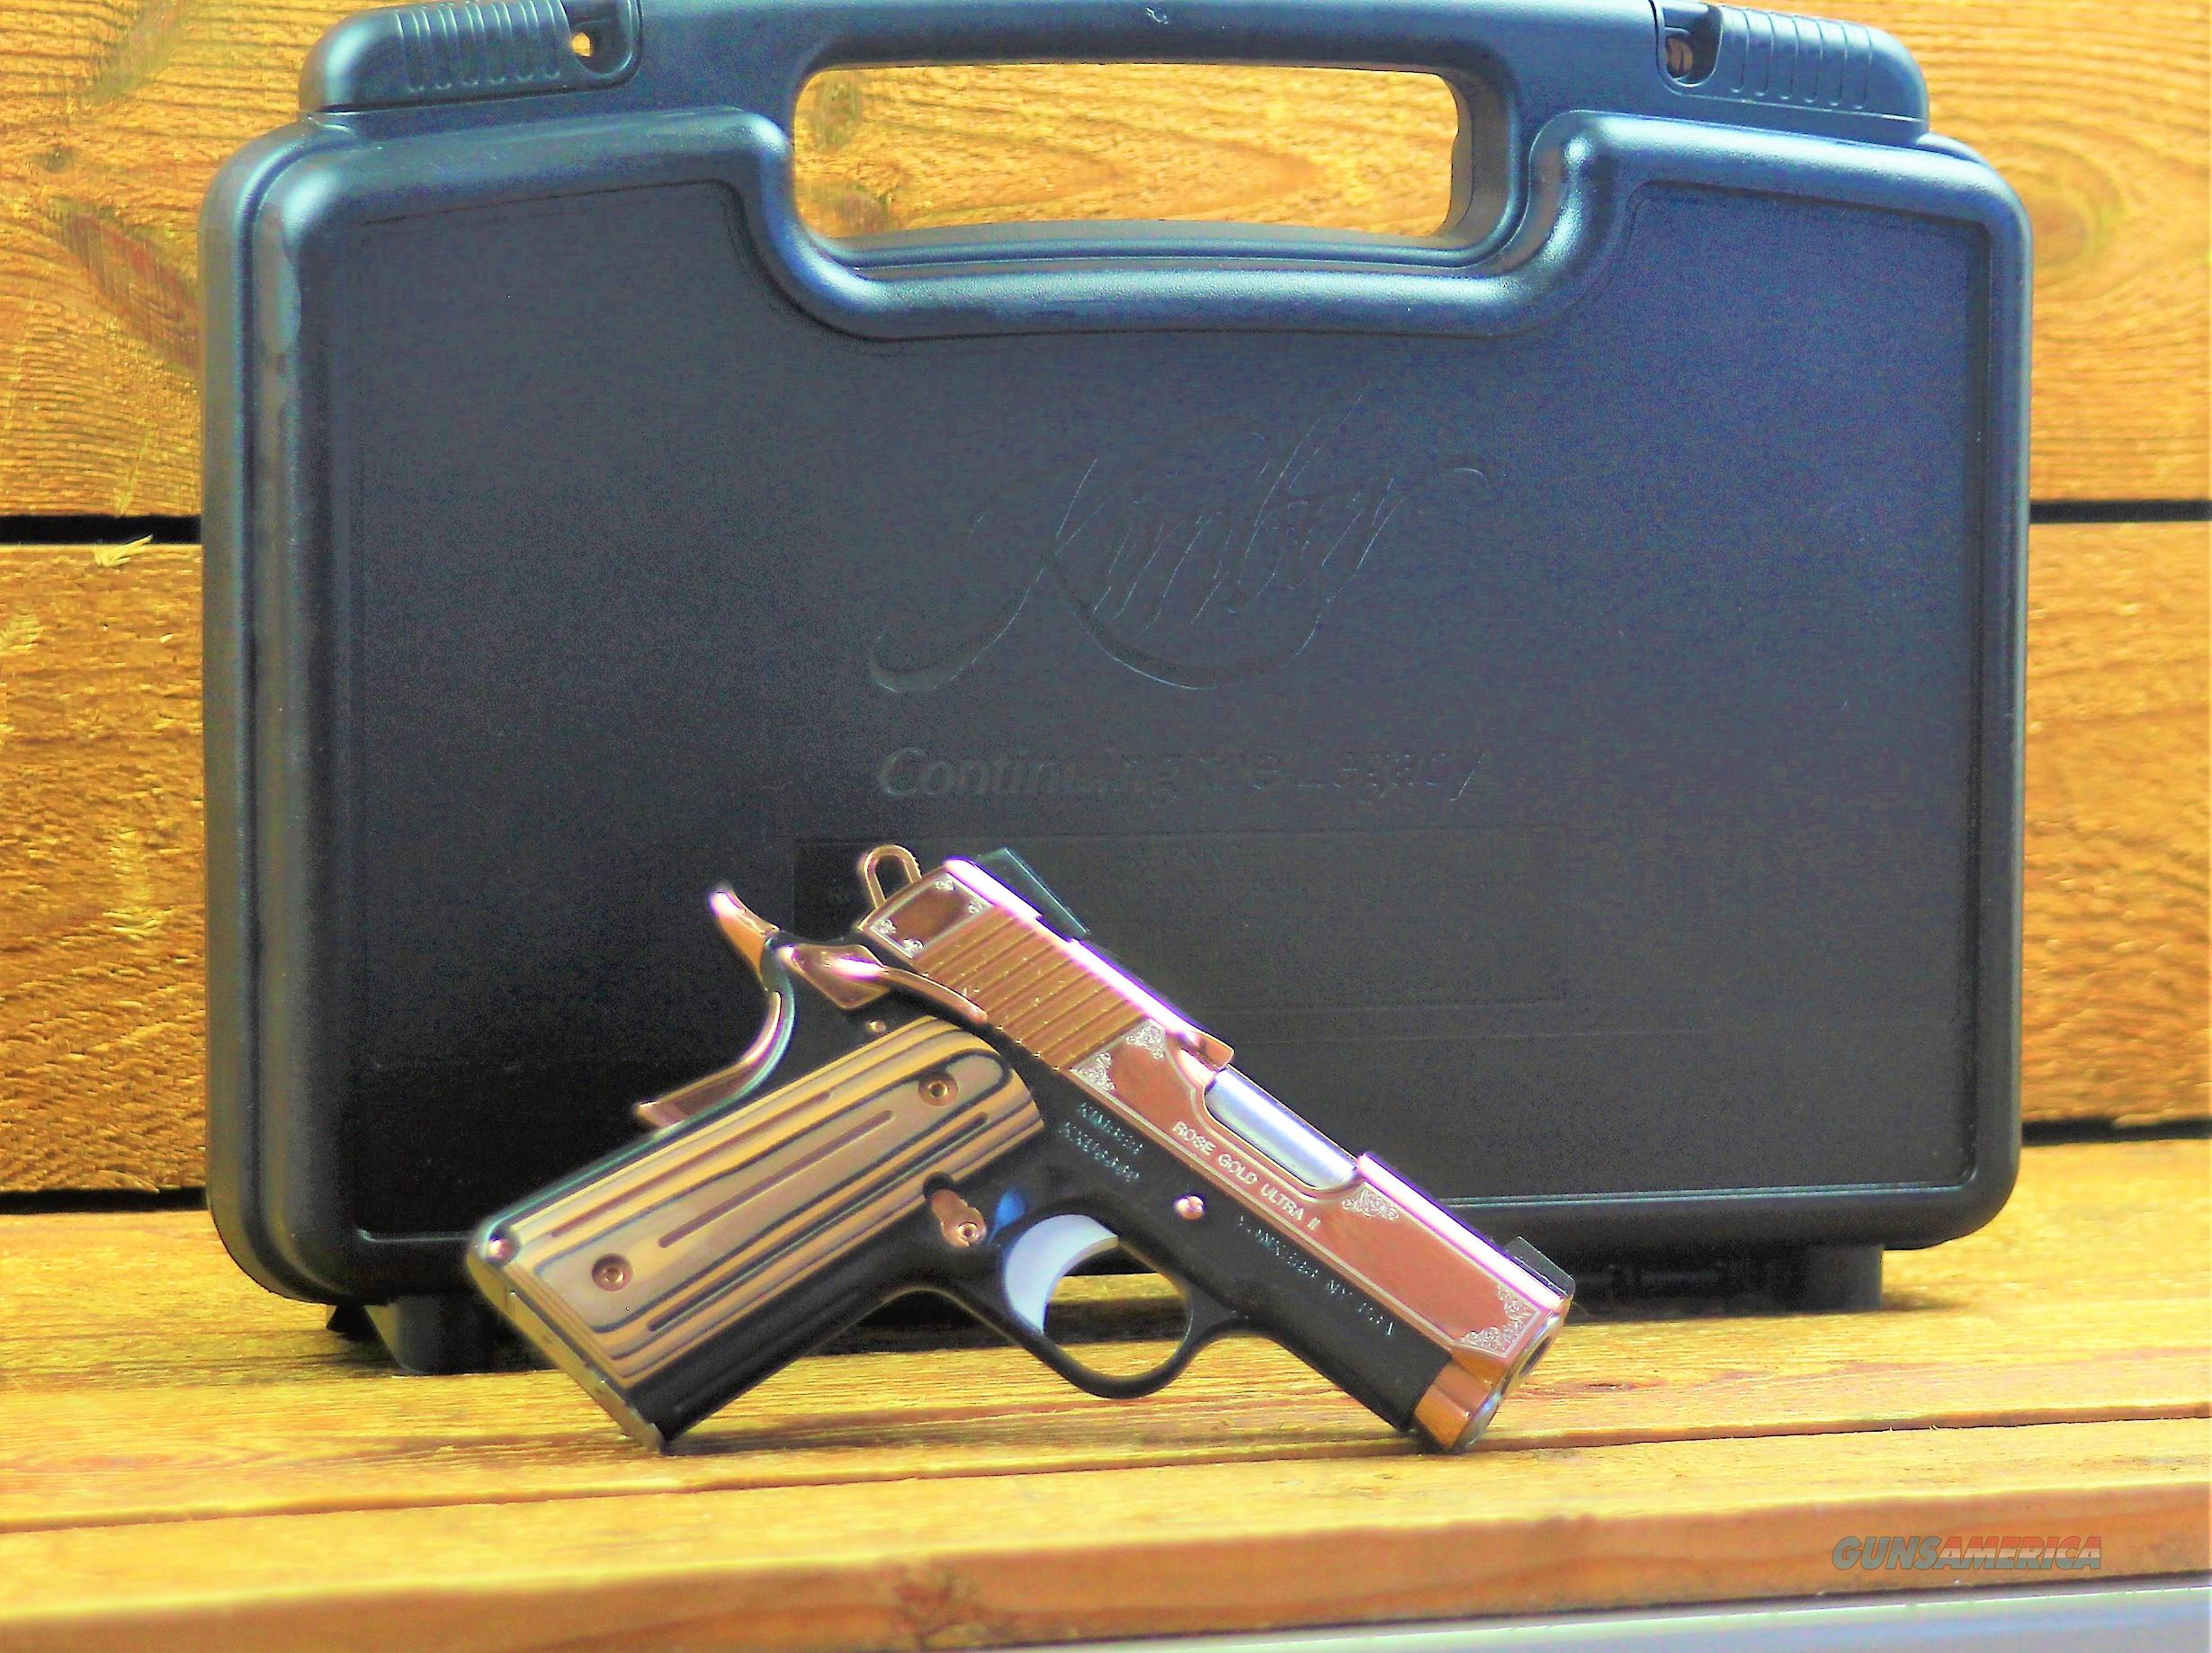 EASY PAY $133 LAYAWAY  Kimber 3200372 Rose Gold Ultra II Pistol - 9mm, 3 in Barrel, Aluminum Frame, Rose Gold PVD Finish, 8 Rd  Guns > Pistols > Kimber of America Pistols > 1911